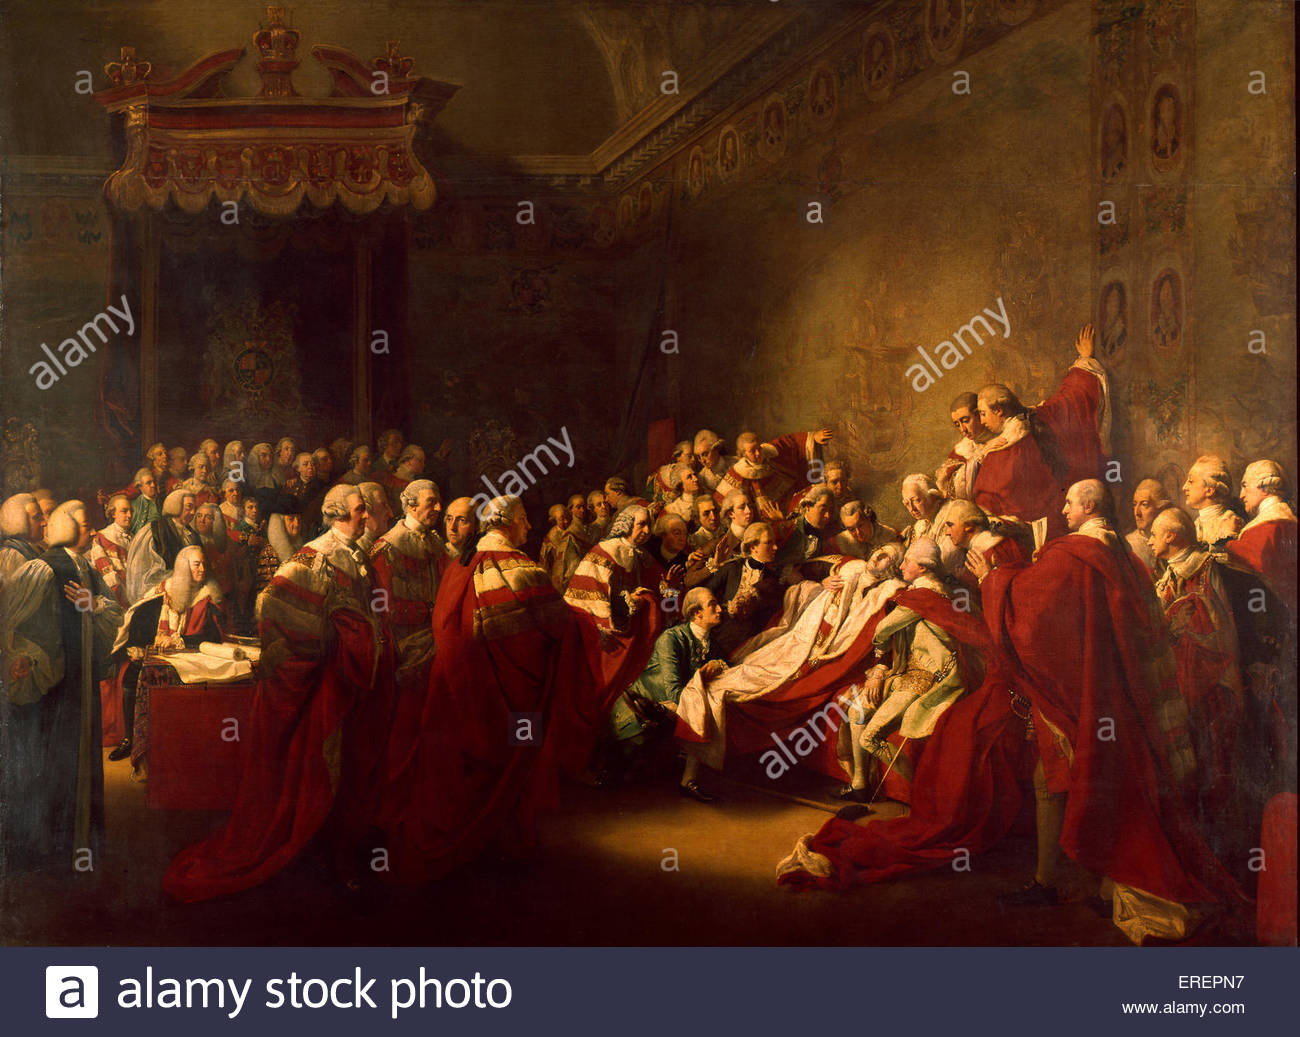 The Death of the Earl of Chatham by John Singleton Copley, 1779. Oil on canvas, 52.7 x 64.2 cm. Depicts the death - Stock Image